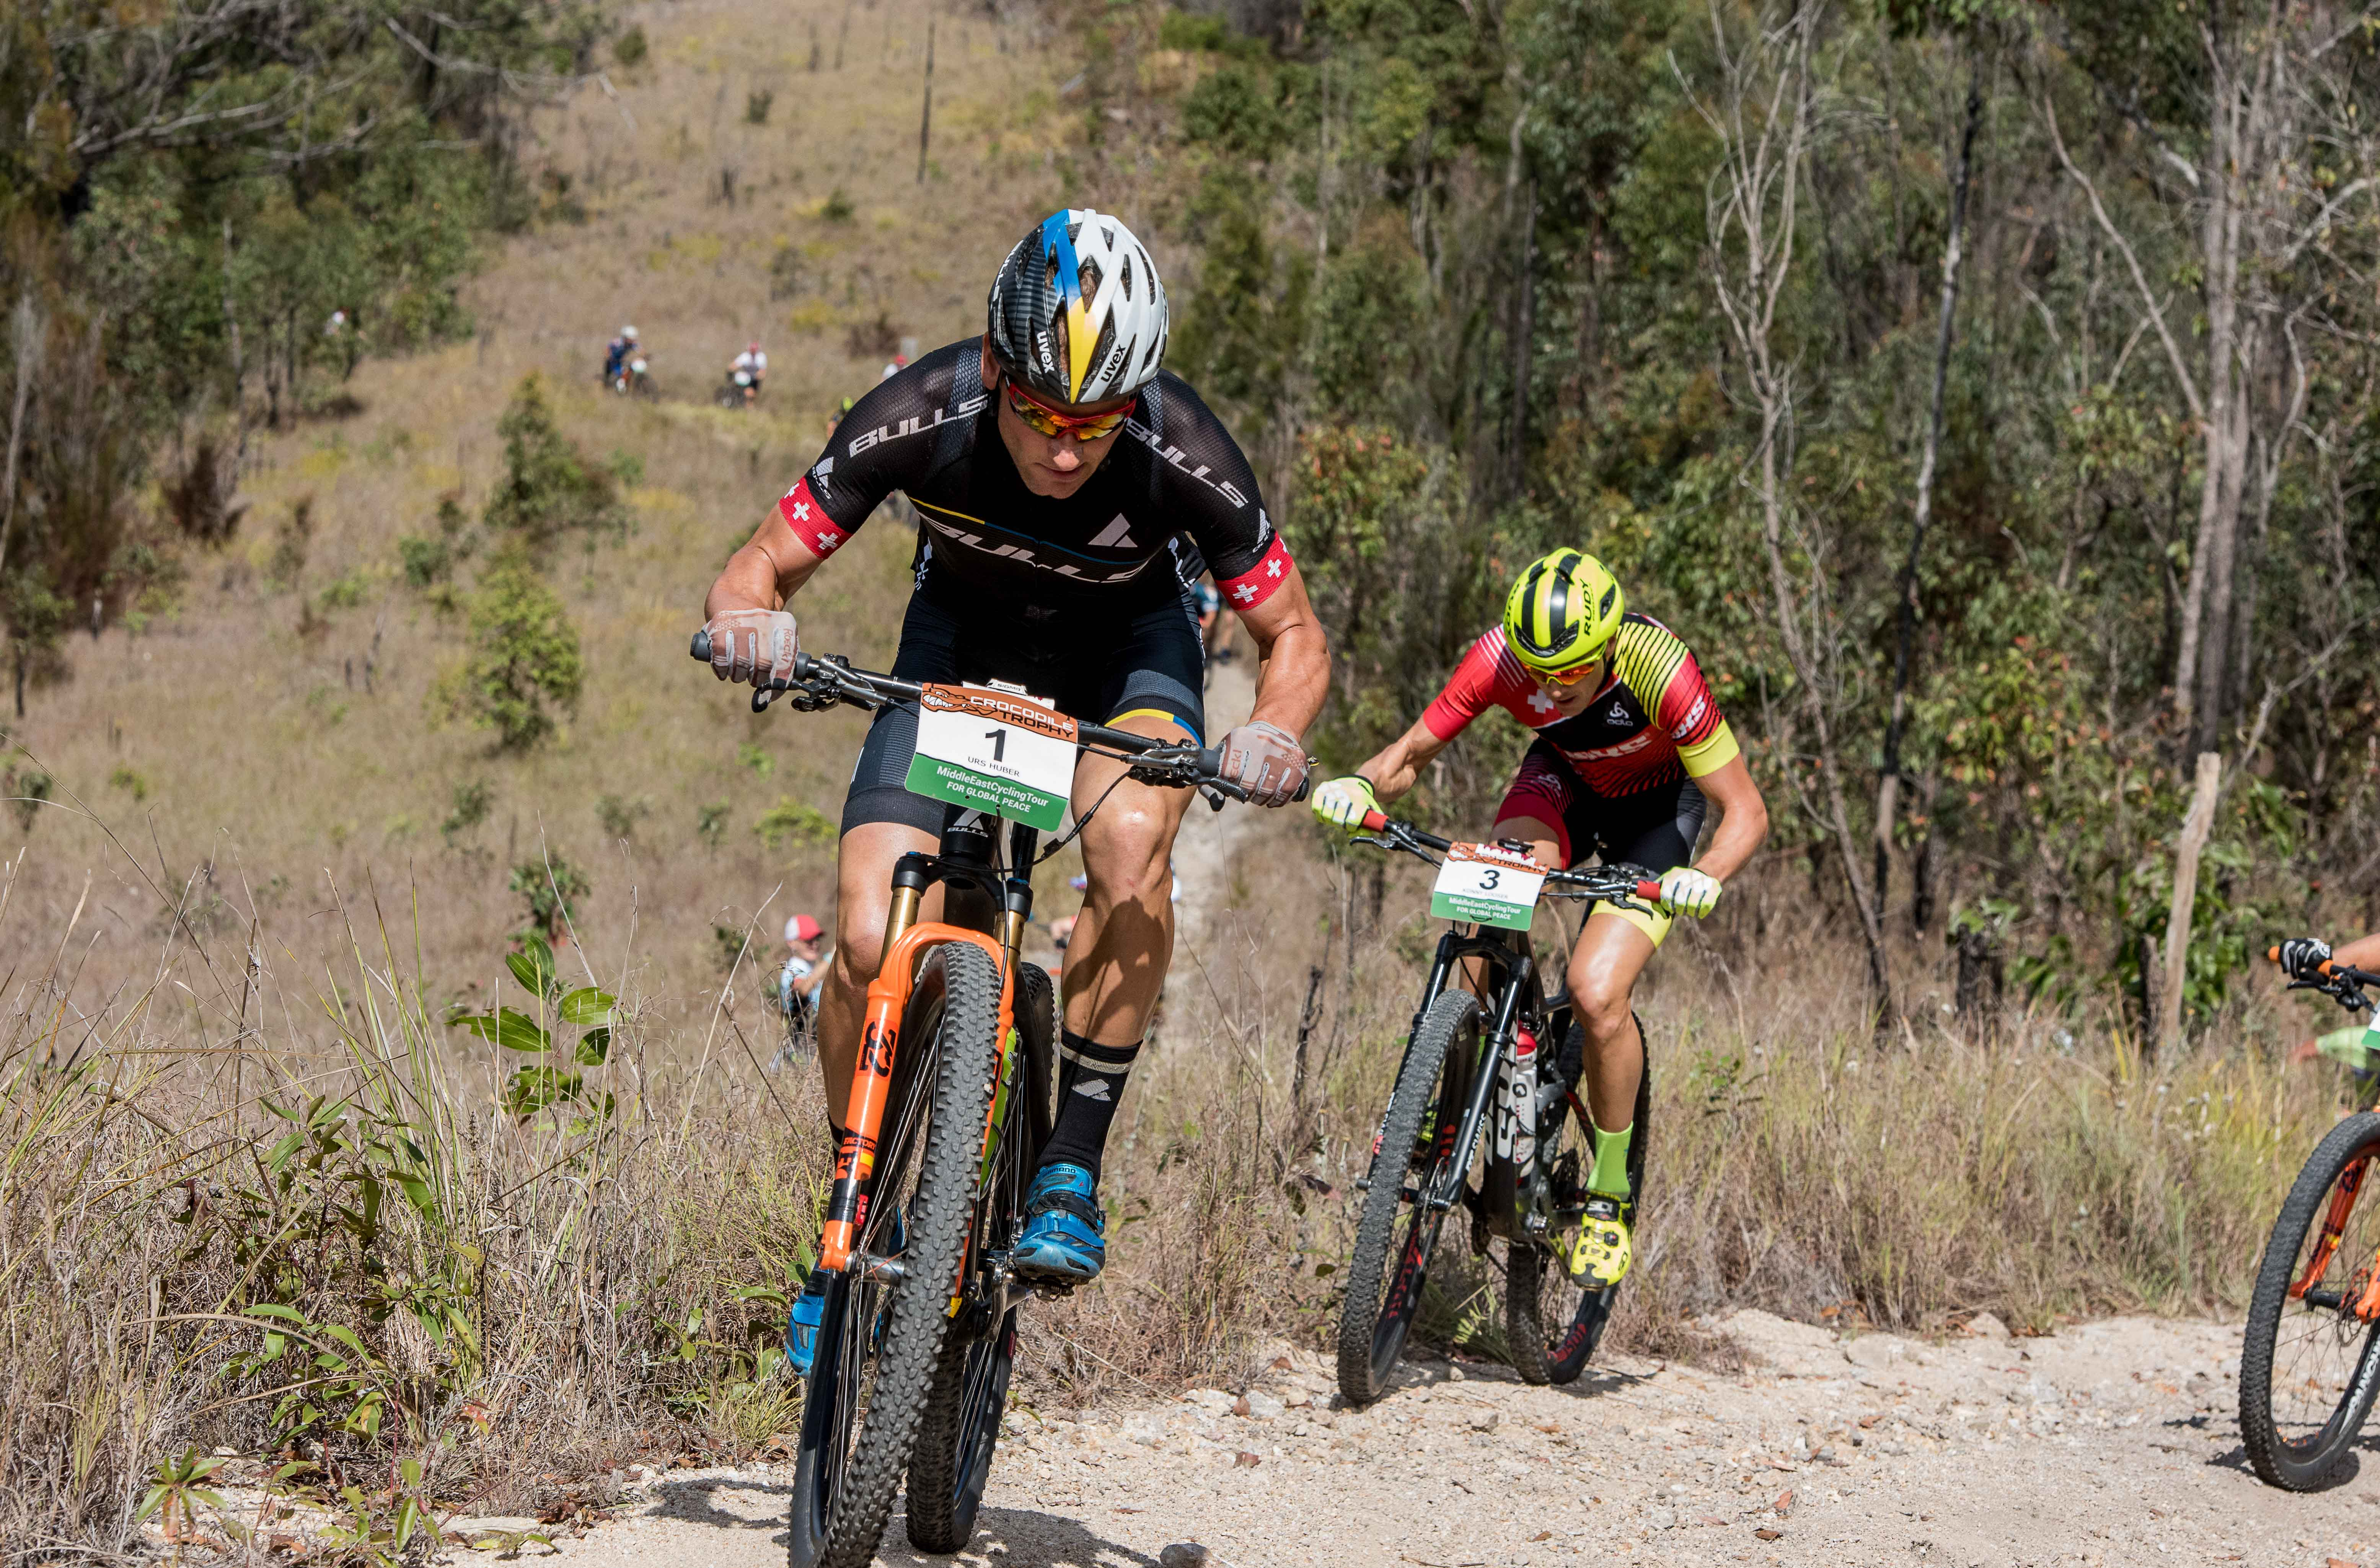 Lucy Coldwell and Urs Huber claim elite stage wins in Herberton